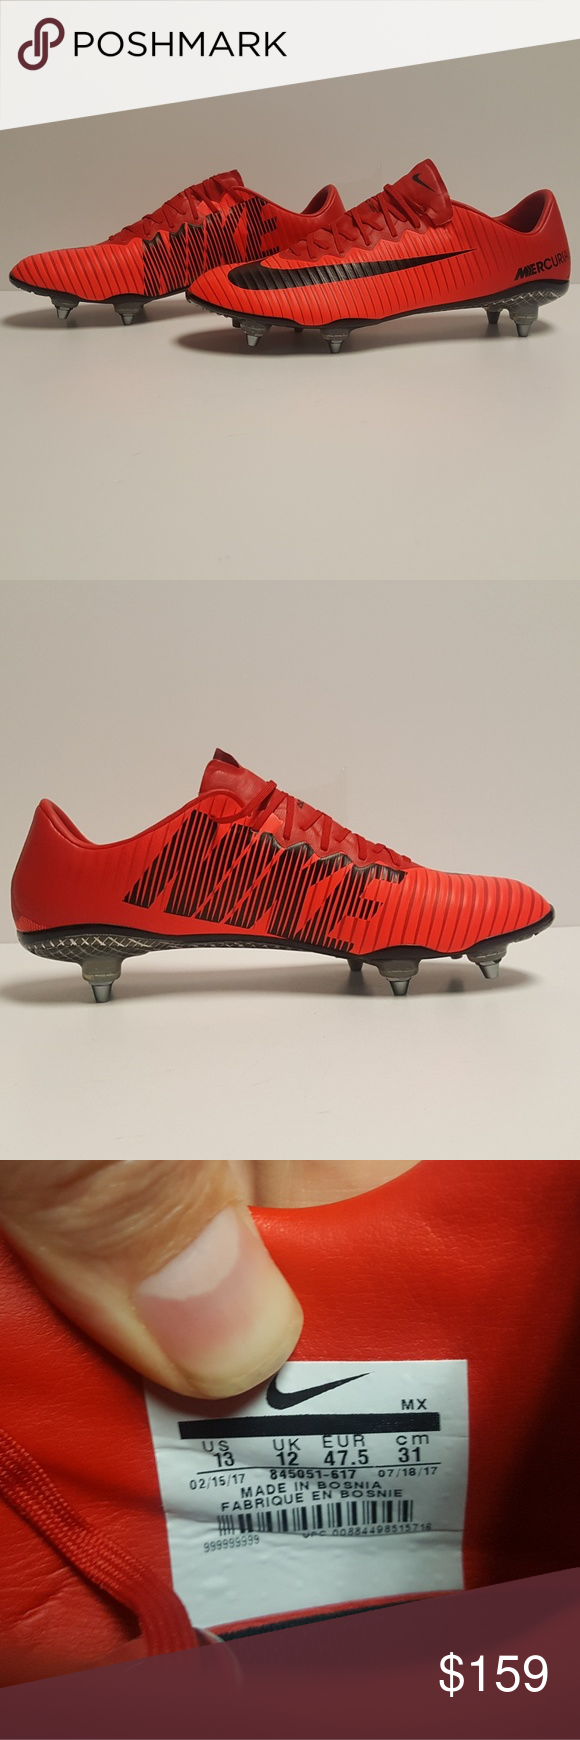 Mens Red Nike Mercurial Vapor Xi Sg Soccer Cleats Up For Grabs Are The Rare Red Nike Mercurial Vapor Xi Sgmen S Soccer Cleat Size Red Nike Soccer Cleats Cleats